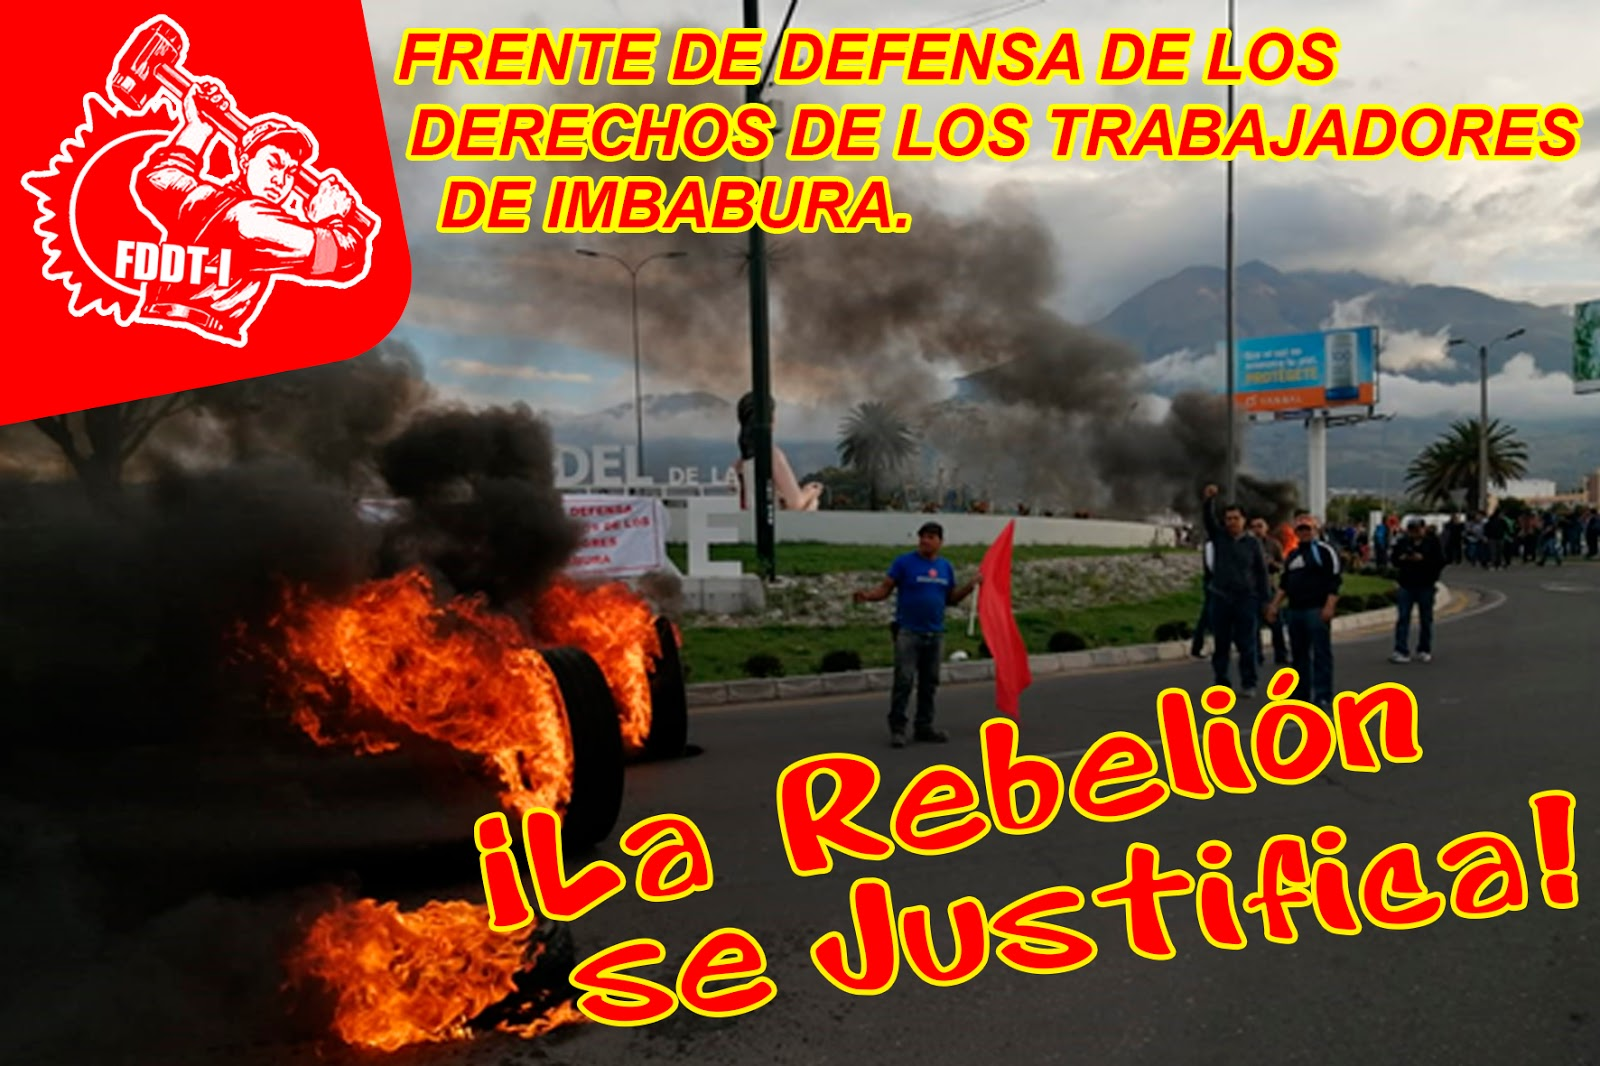 Ecuador it is right to rebell 3